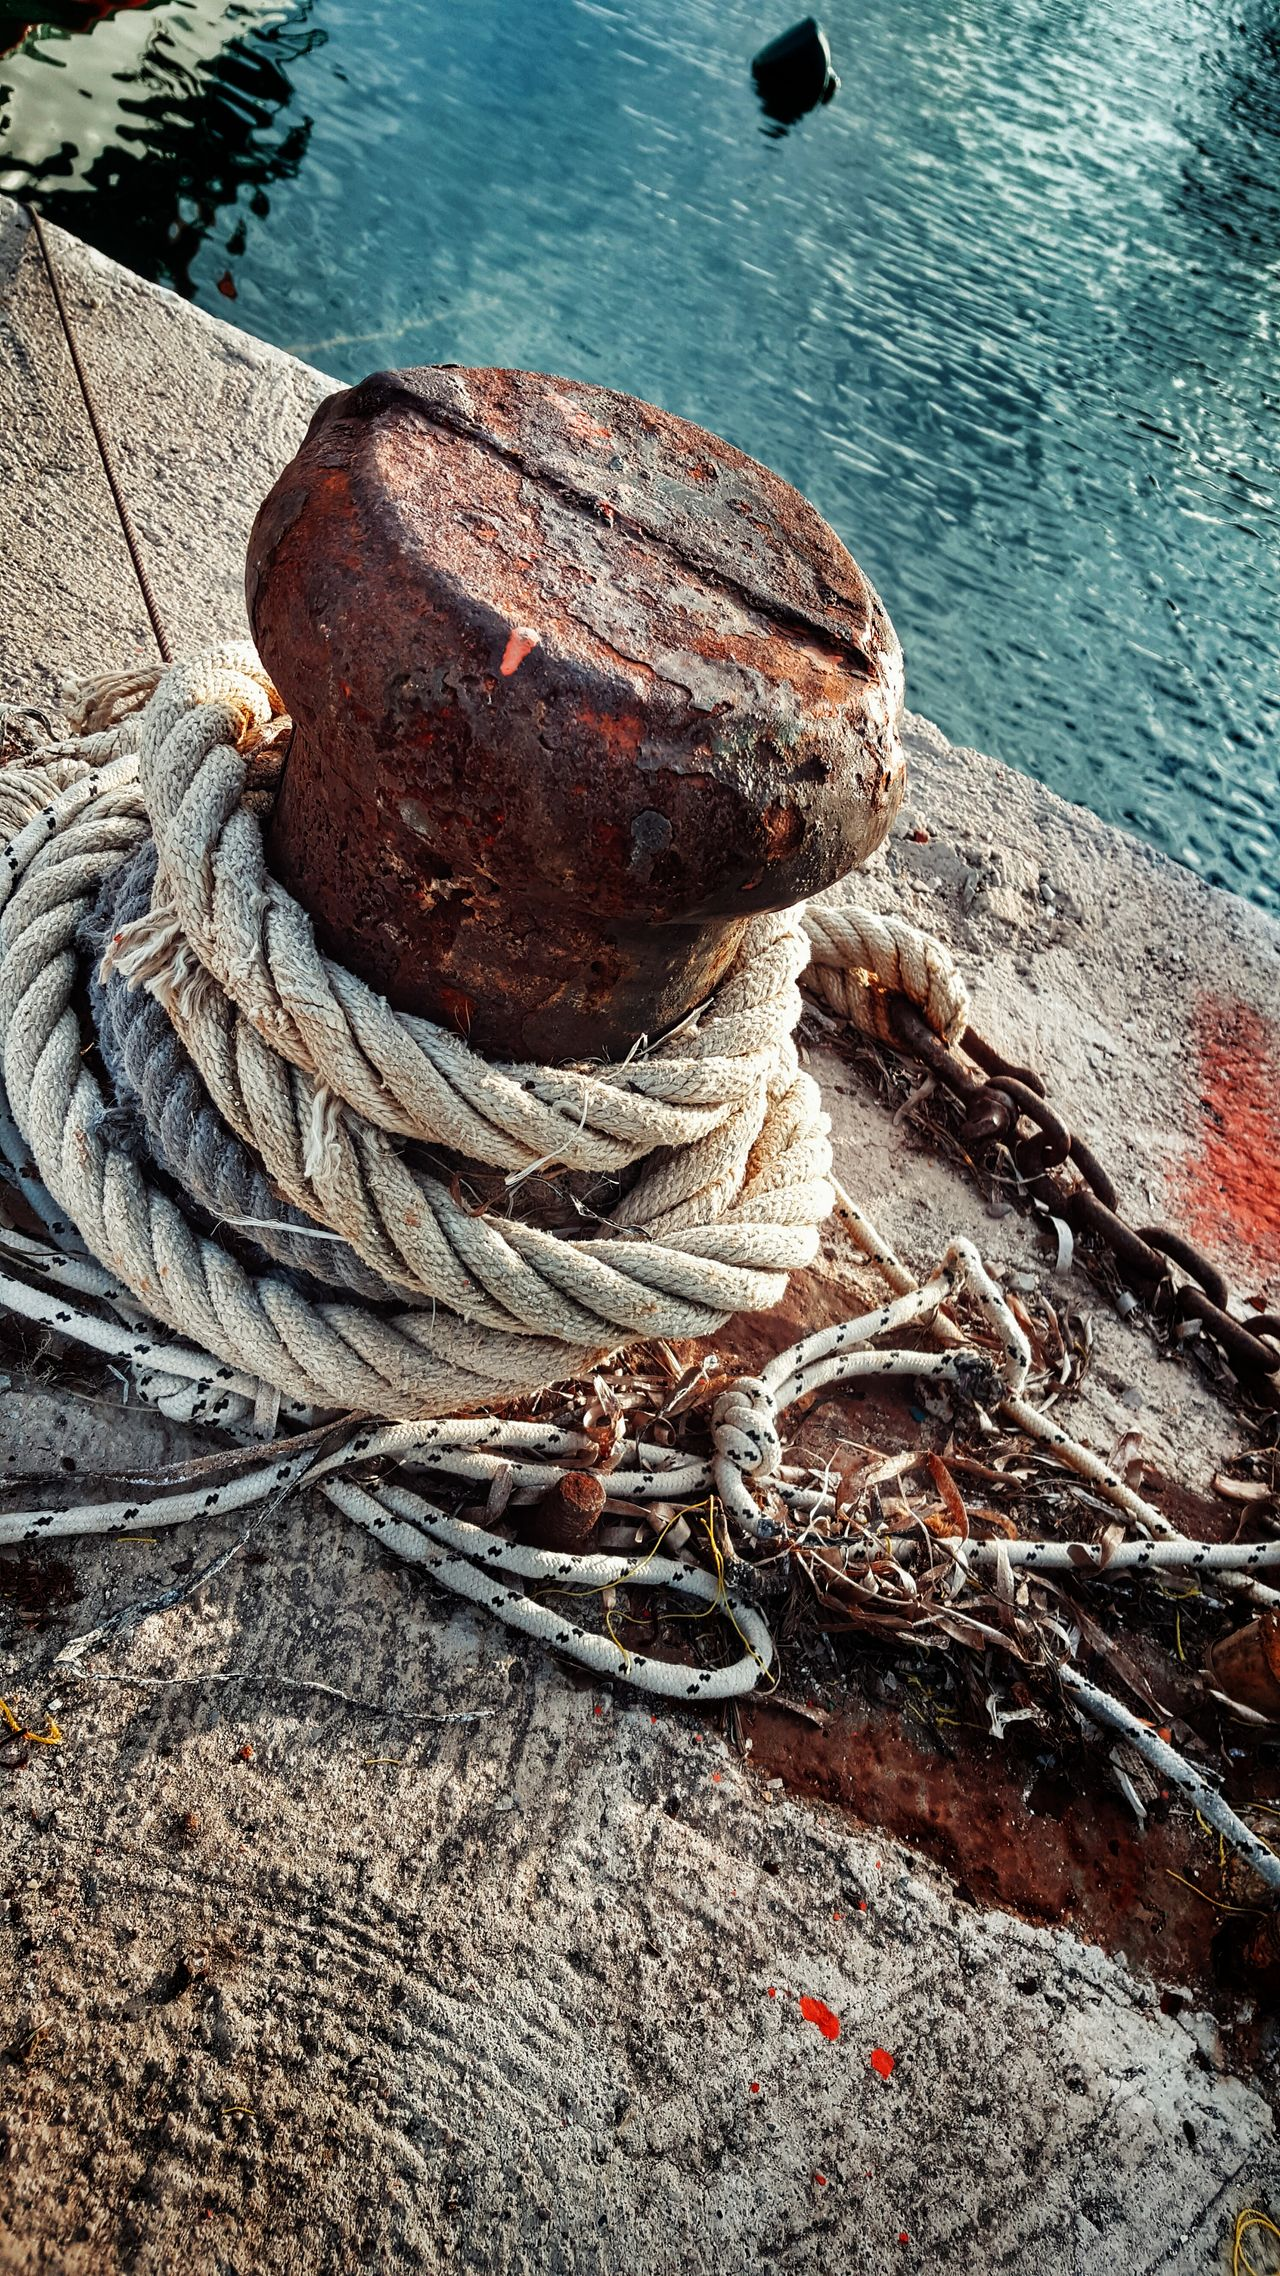 Still Life Seascape Cape  Cape Point StillLifePhotography Capepoint Object Photography Simplicity Saltiness At The Port GrungeStyle Grunge It Up Seawater Ropeway Ropes Rotten Ropeswing  Rope Textures And Surfaces